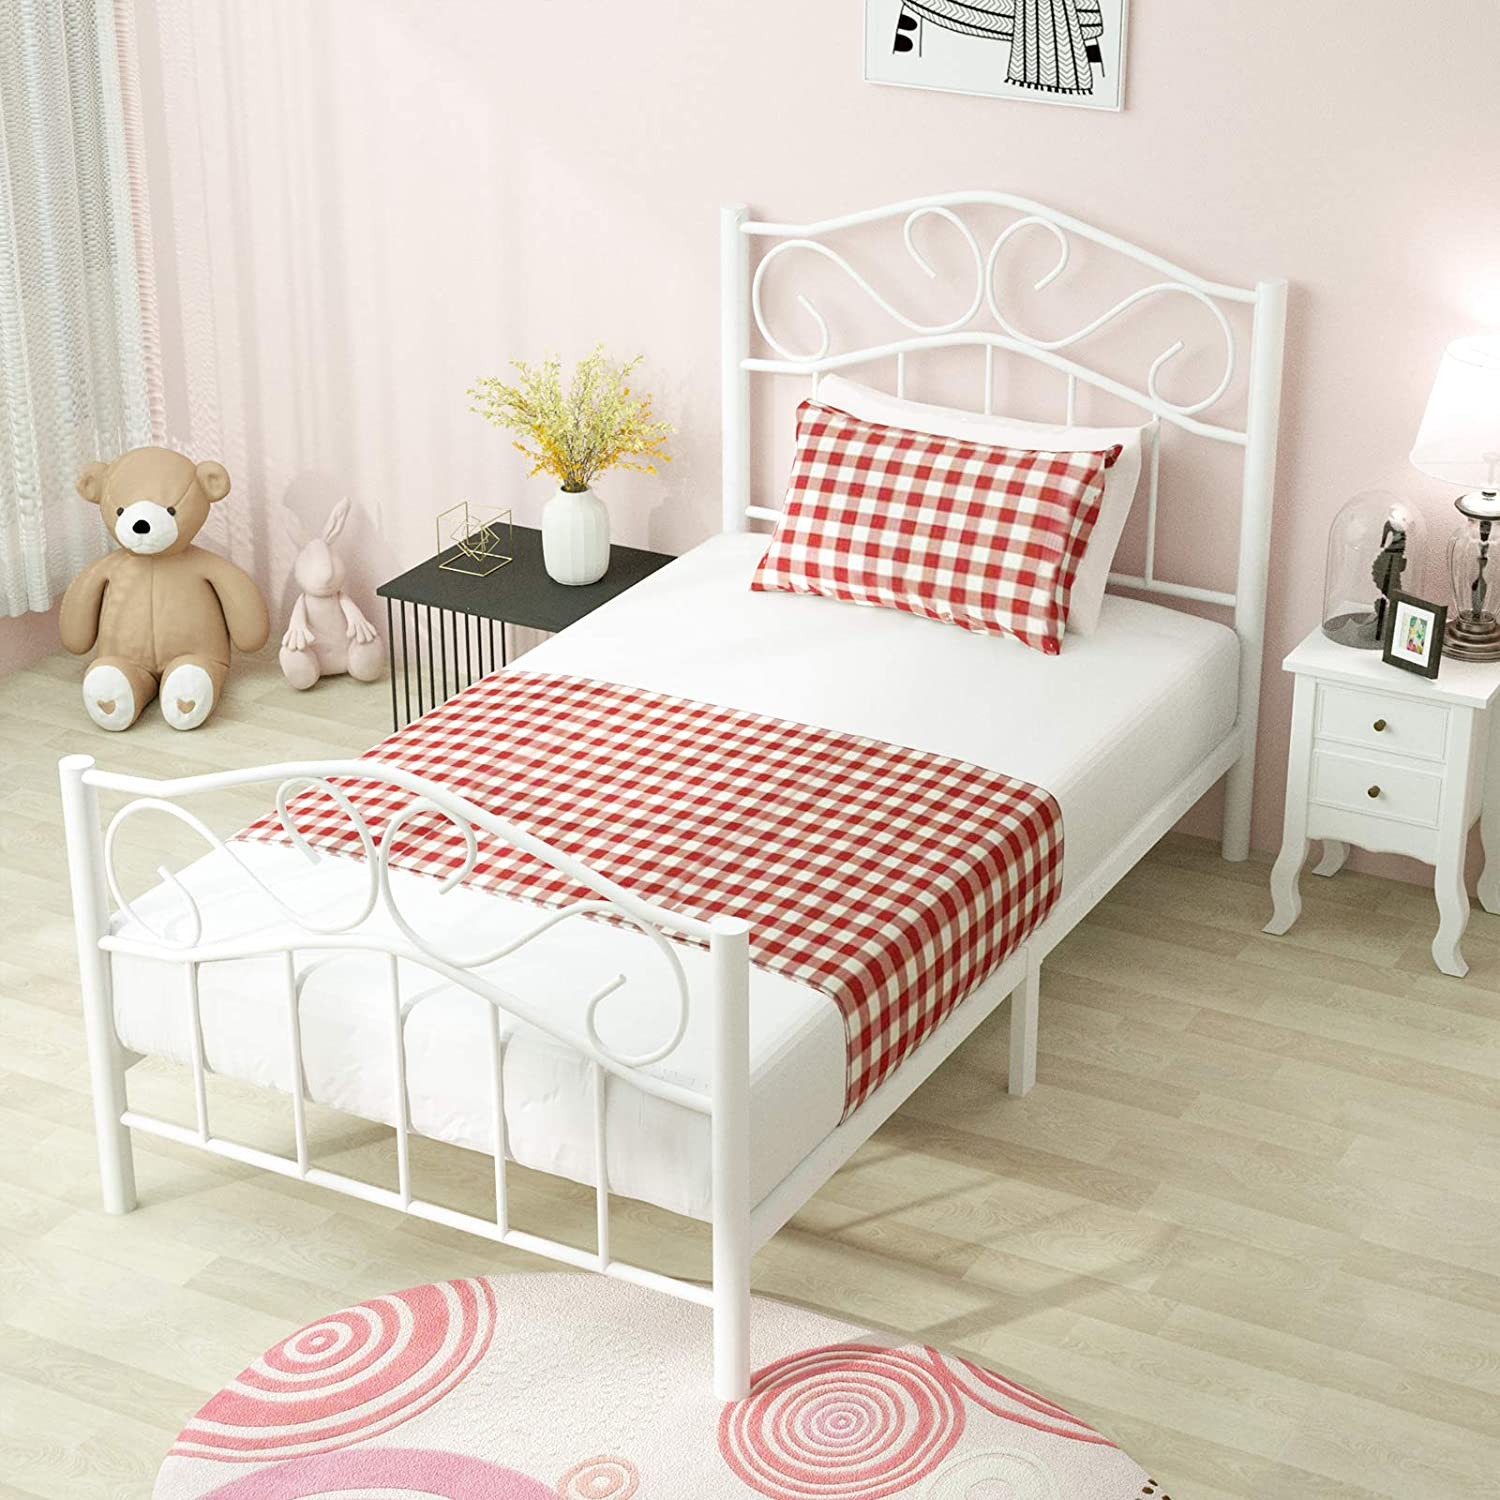 Metal Bed Frame Full Size Platform Kids Bedroom Furniture Headboard Child White